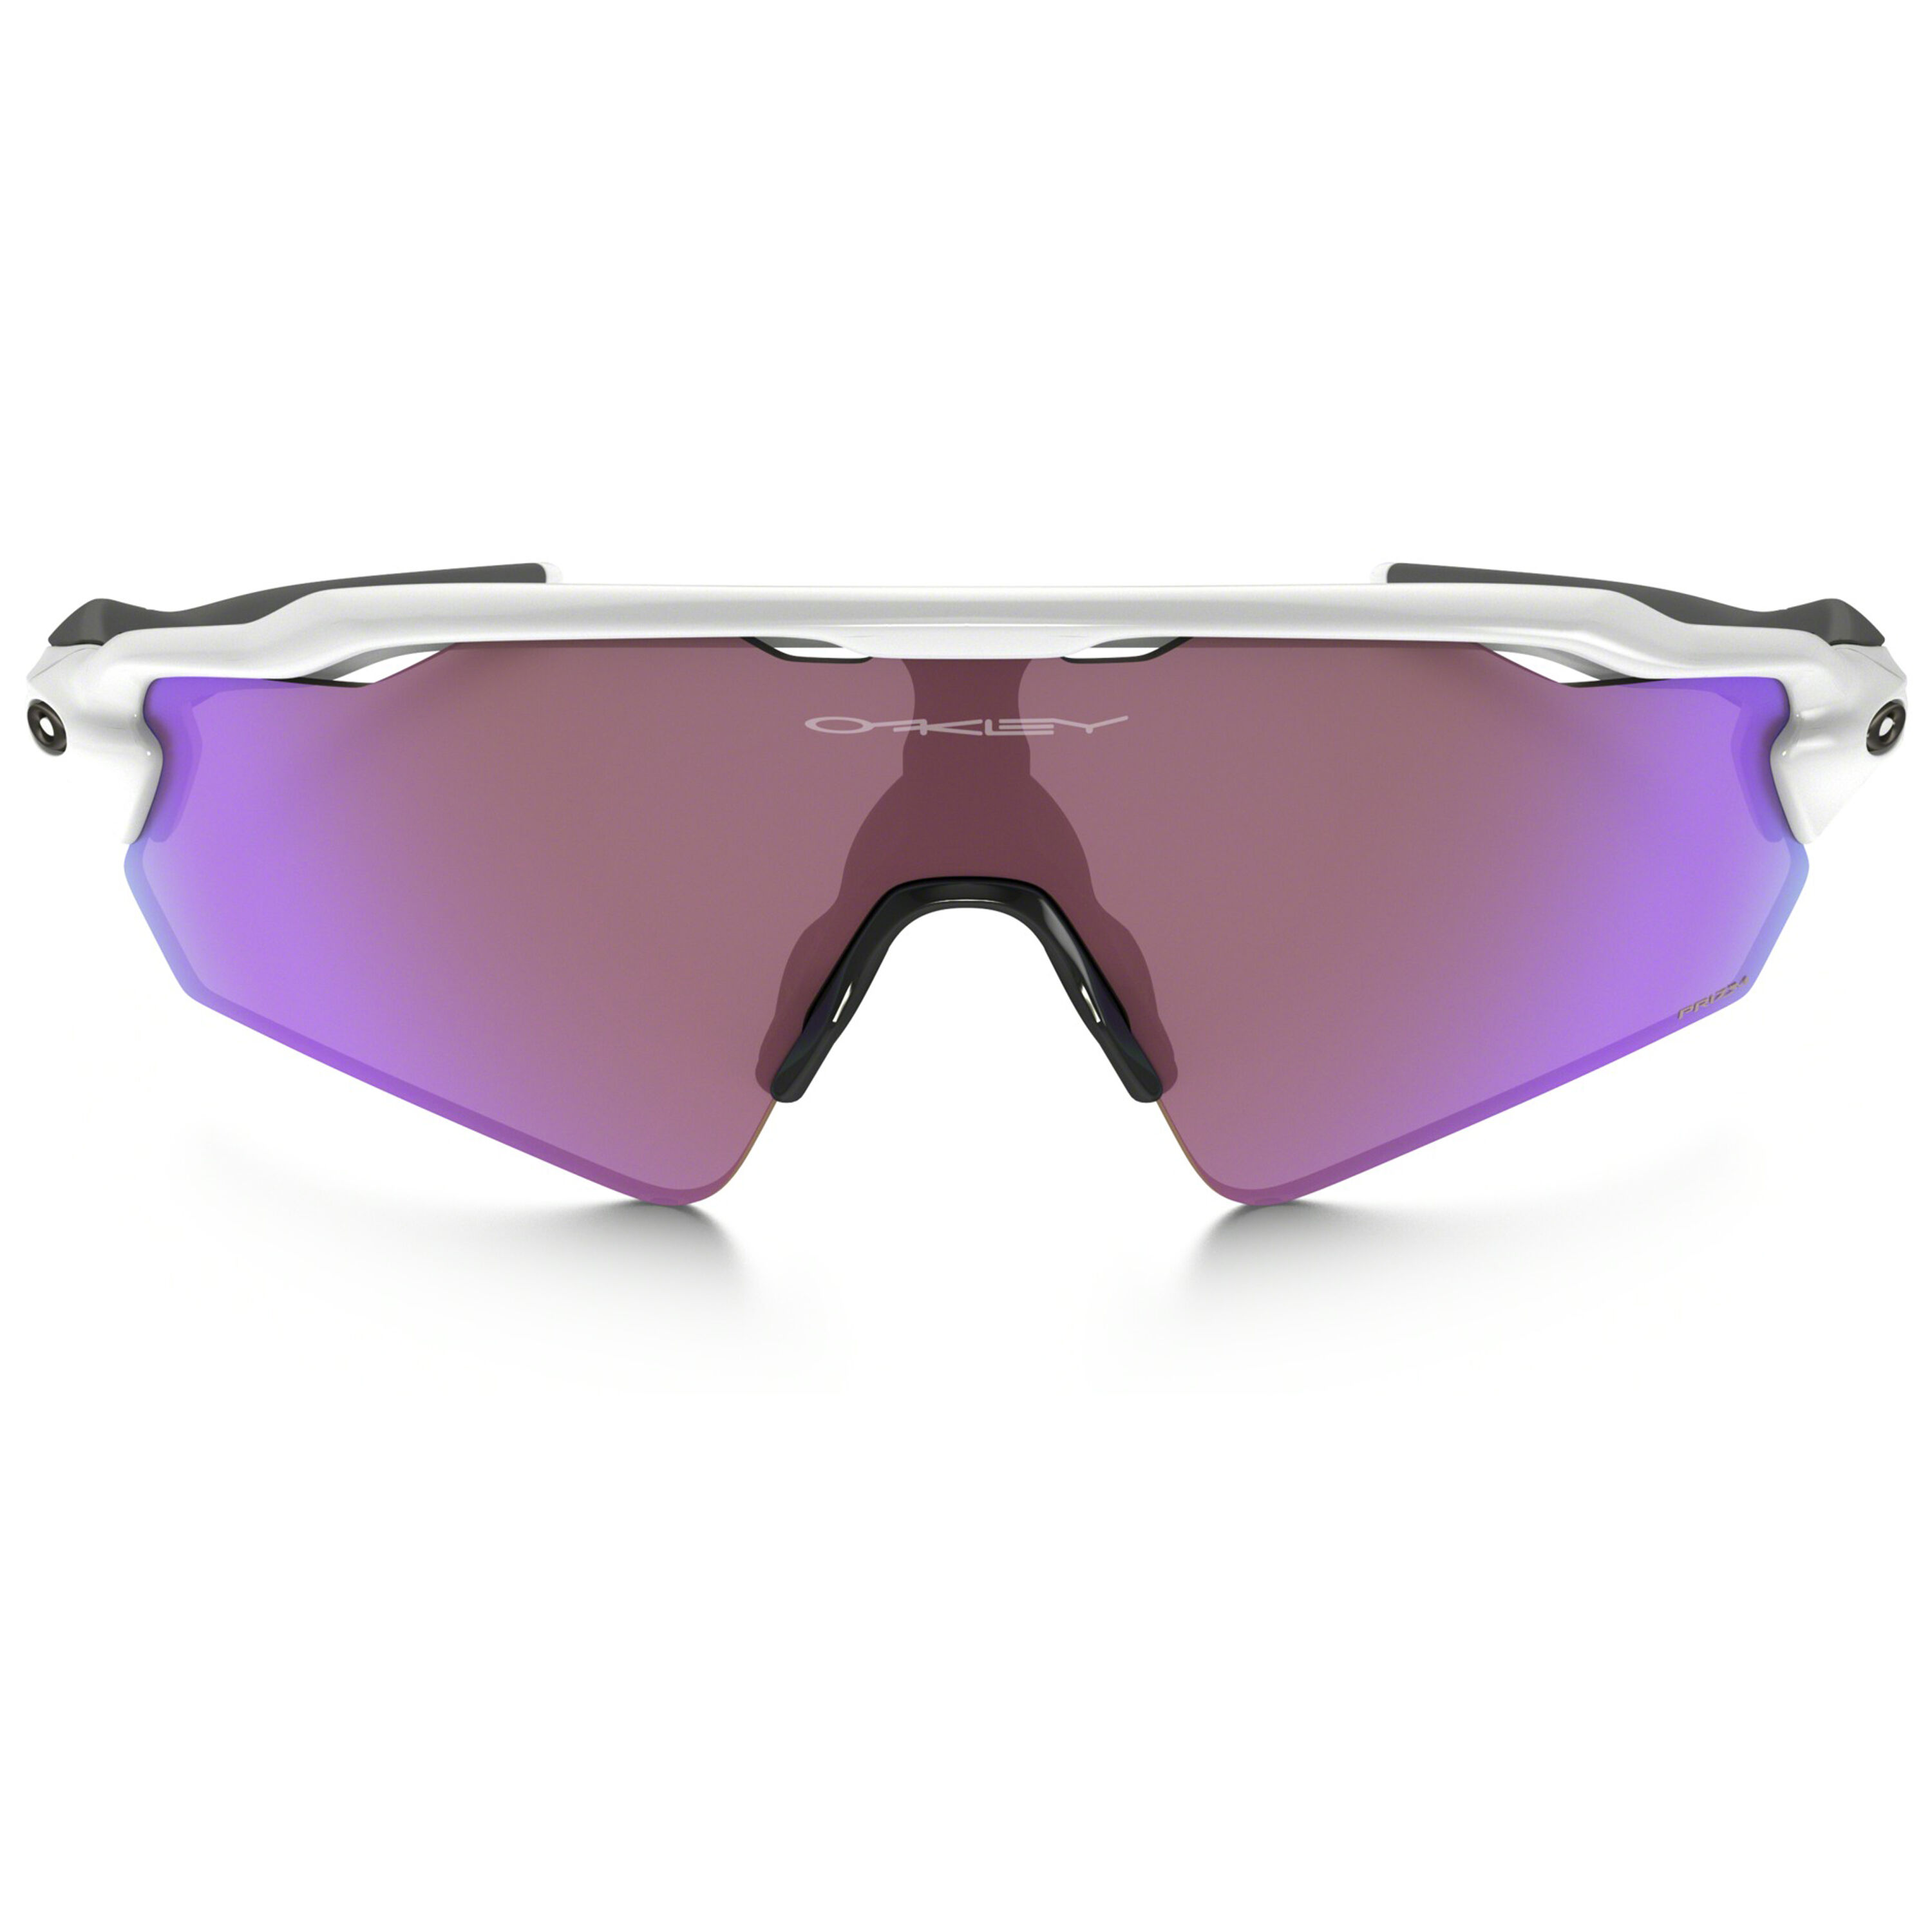 Lunettes Oakley Radar EV Pitch Prizm Golf LordGun online bike store 621647f22b65